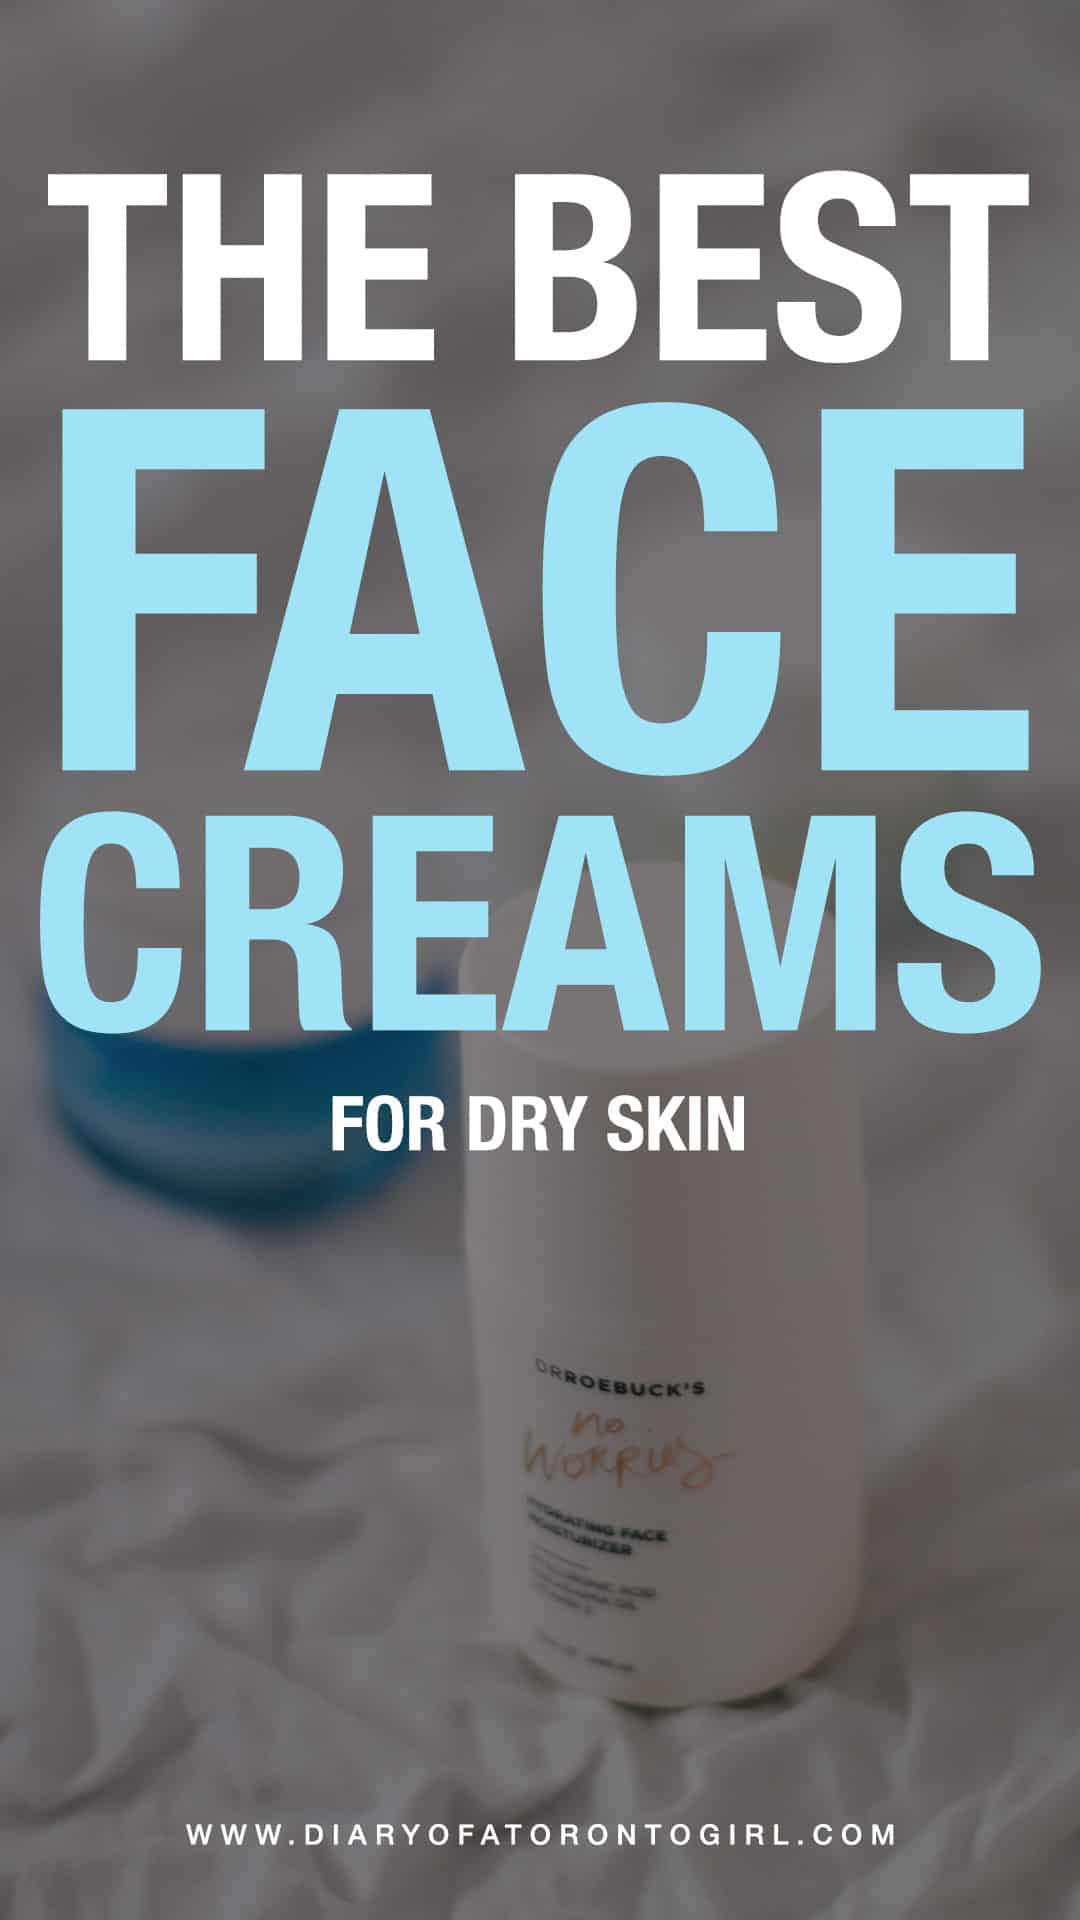 Struggling with dry skin? Here are some of the best face creams and moisturizers to help hydrate your skin! If you suffer from eczema, these creams are especially helpful.